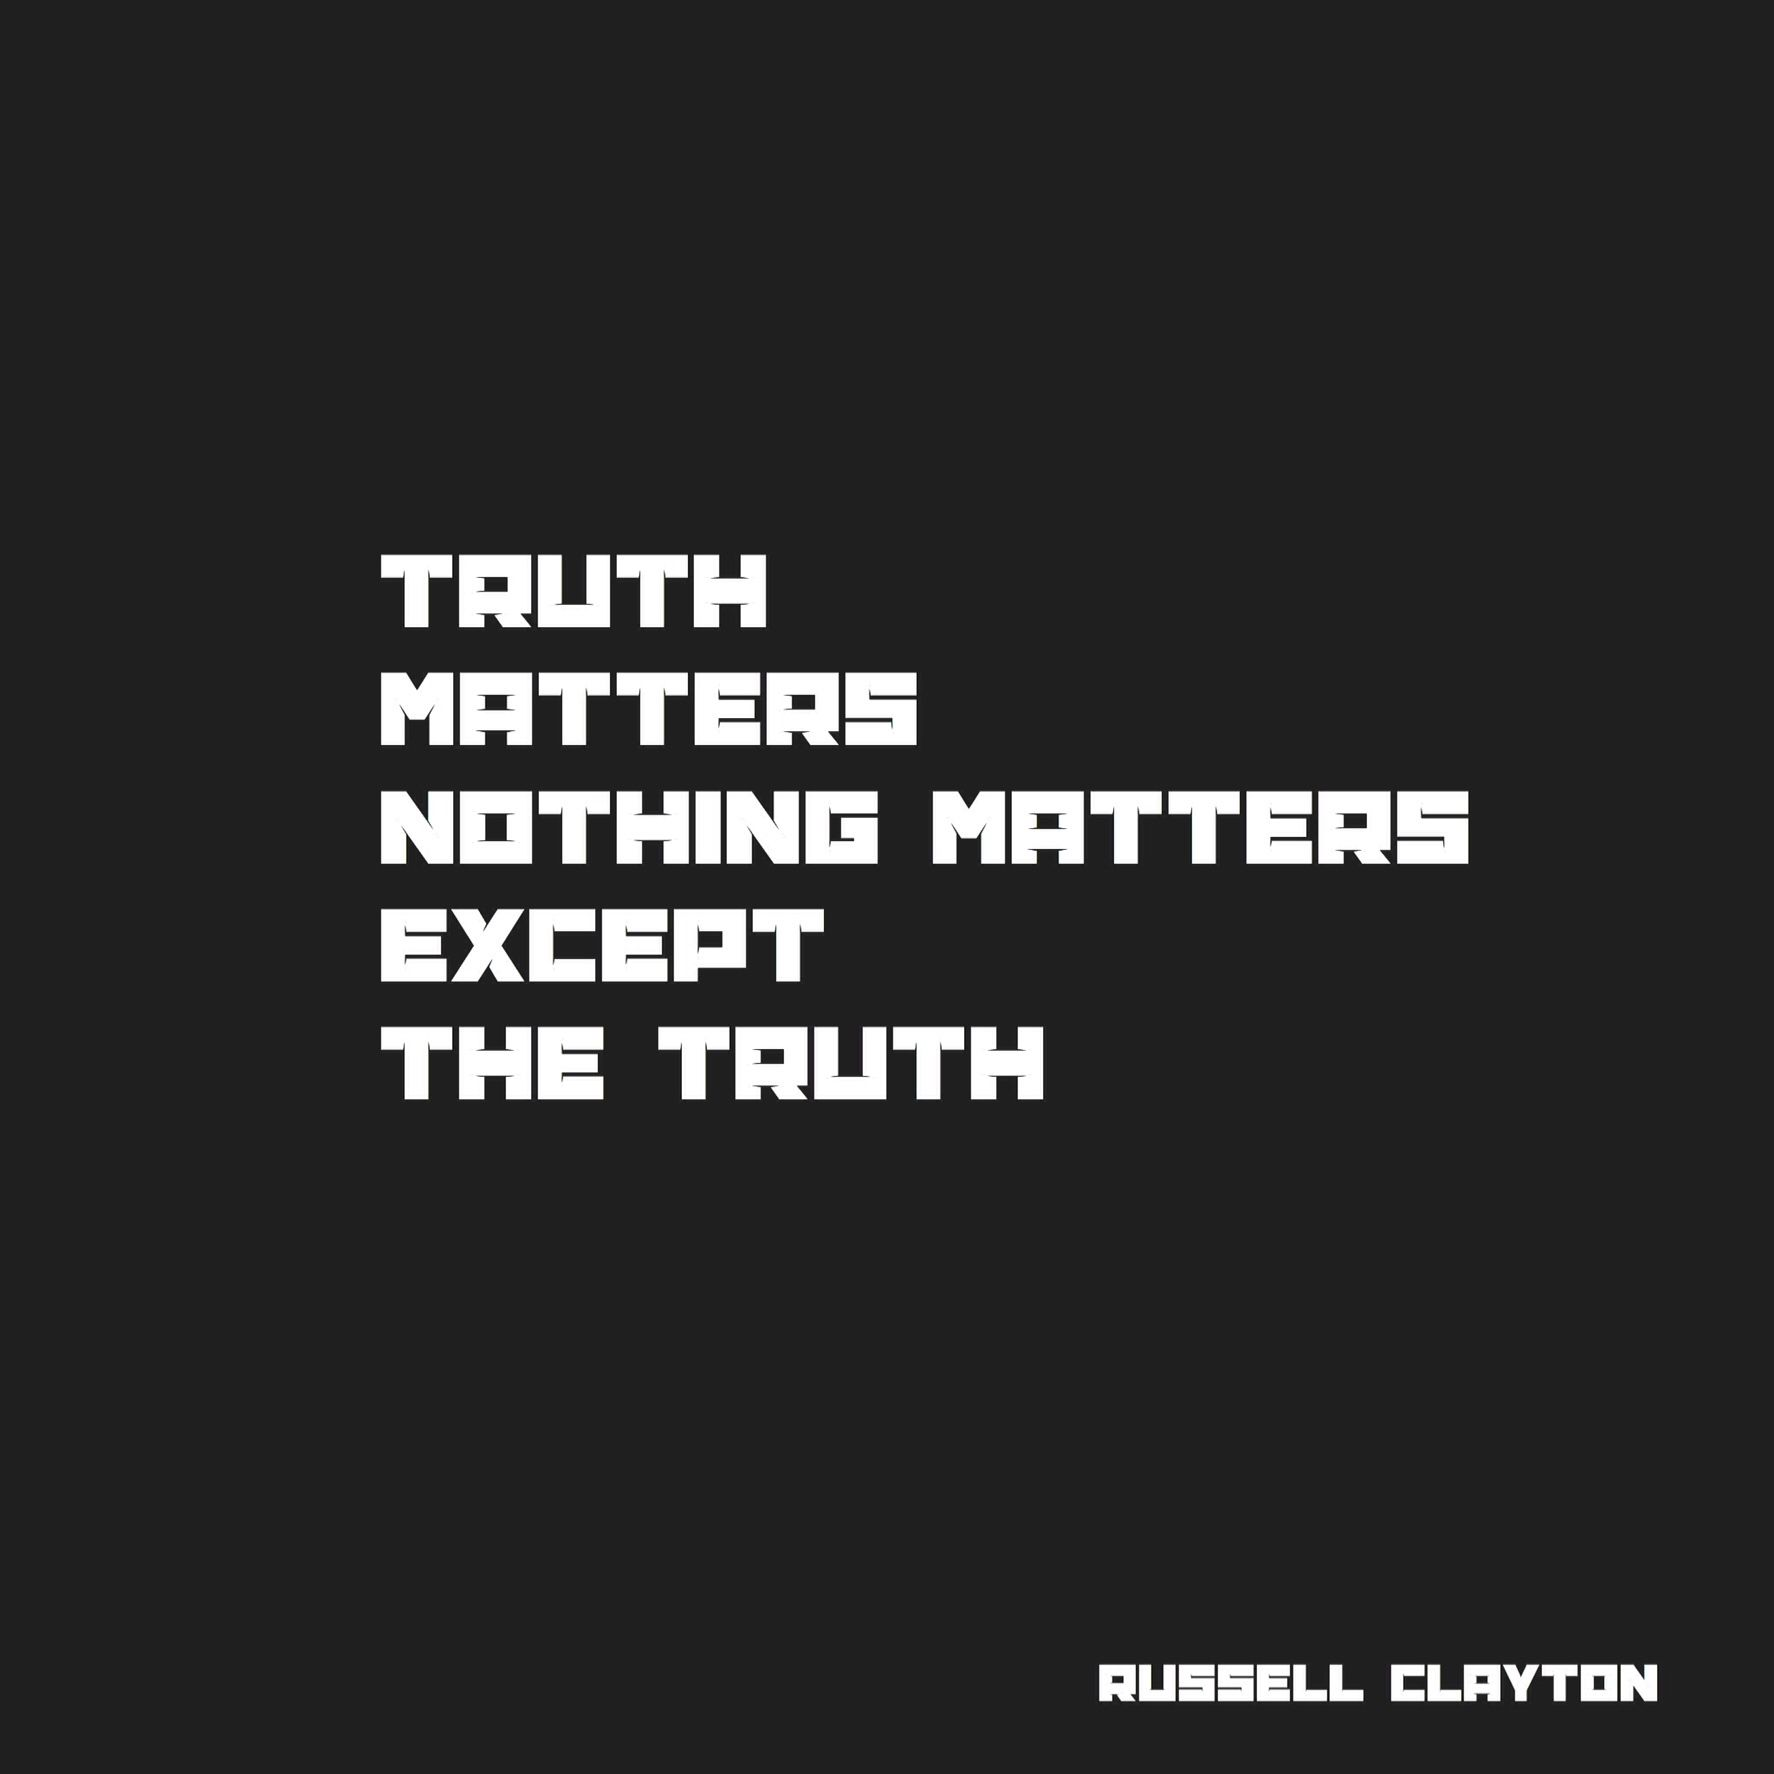 Truth matters nothing matter except the truth | Truth, Nothing matters,  Tech company logos